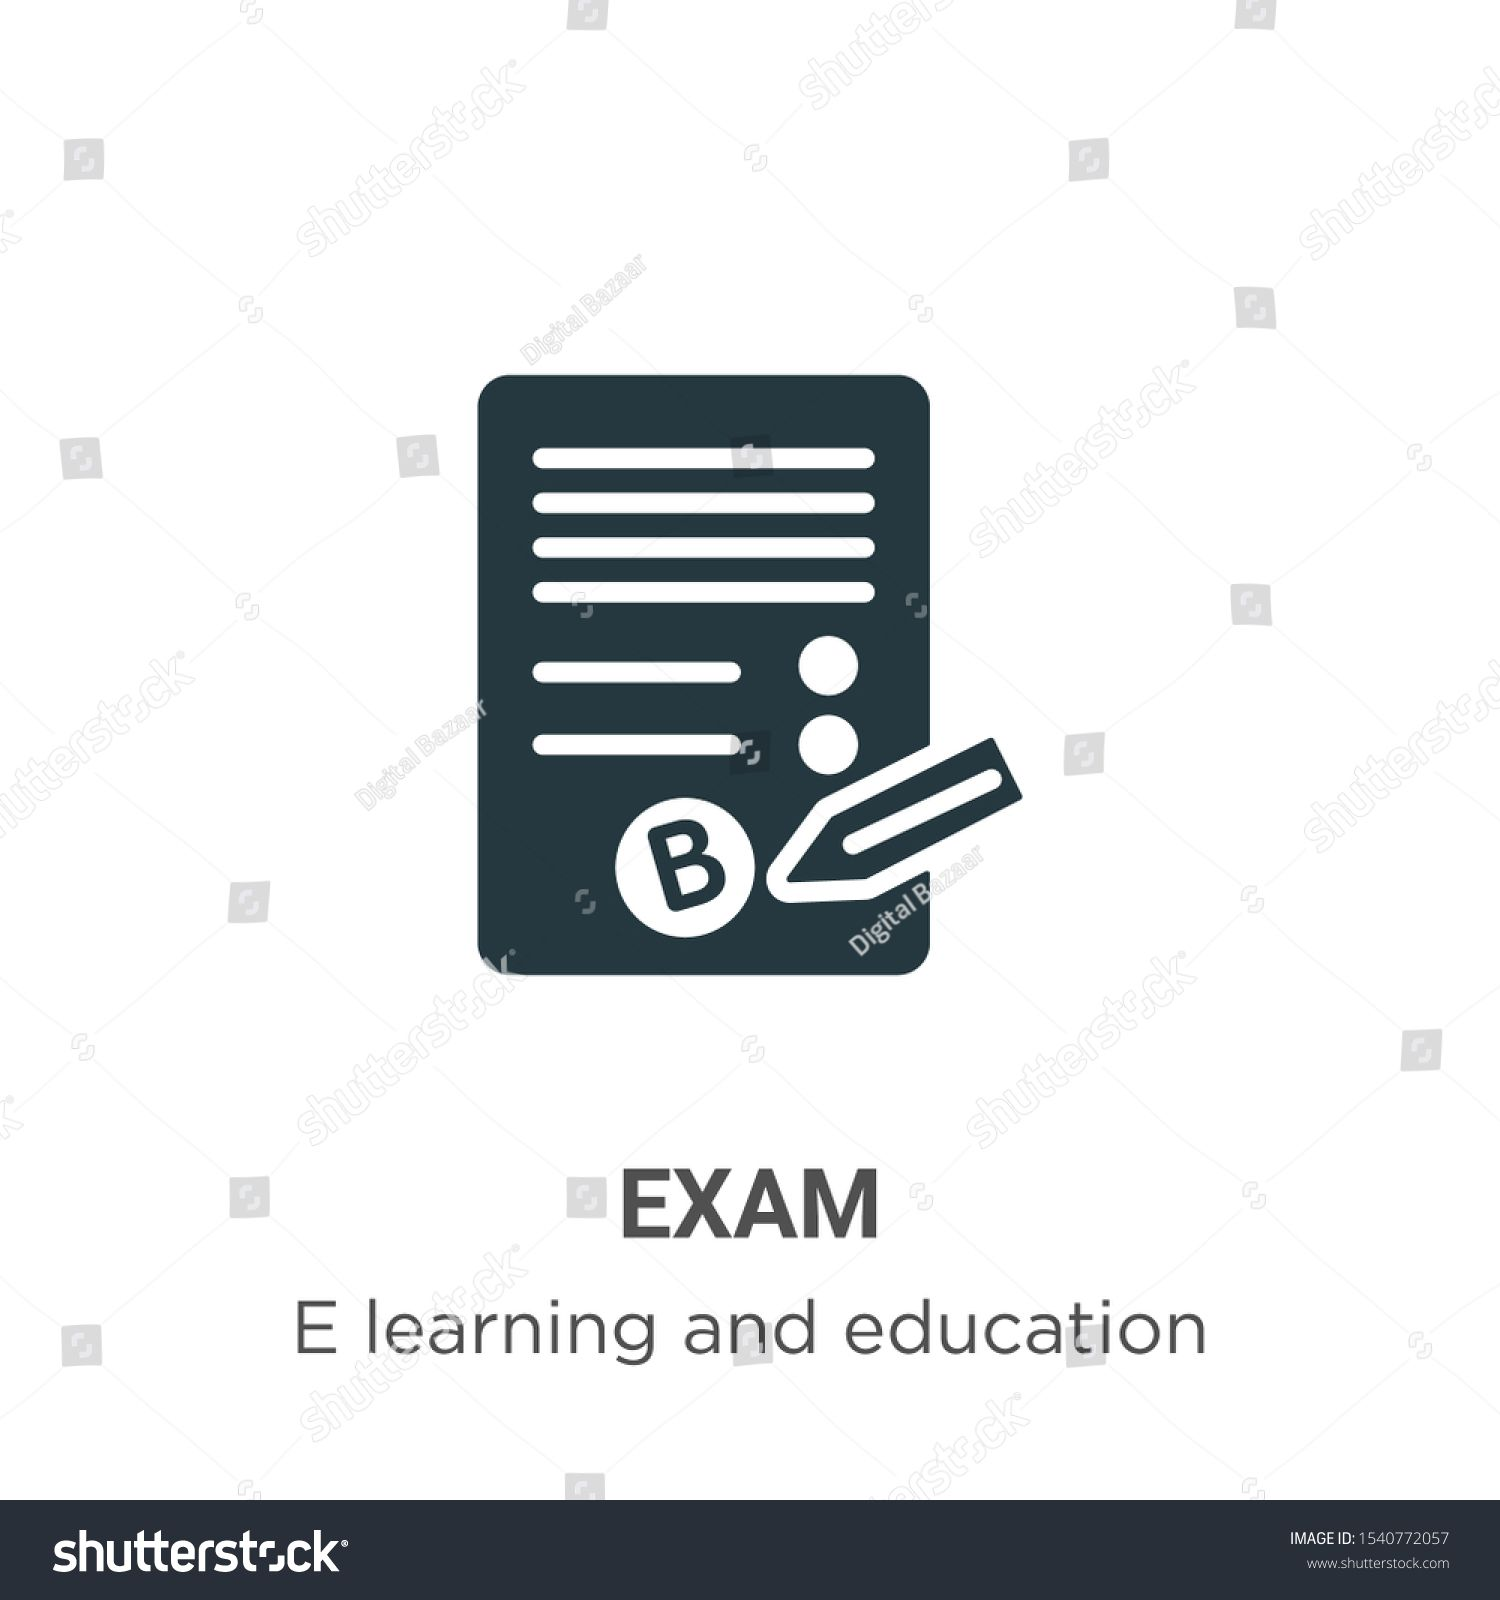 Exam Vector Icon On White Background Flat Vector Exam Icon Symbol Sign From Modern E Learning And Education Collection For Mobil Mockup Design App Design Exam